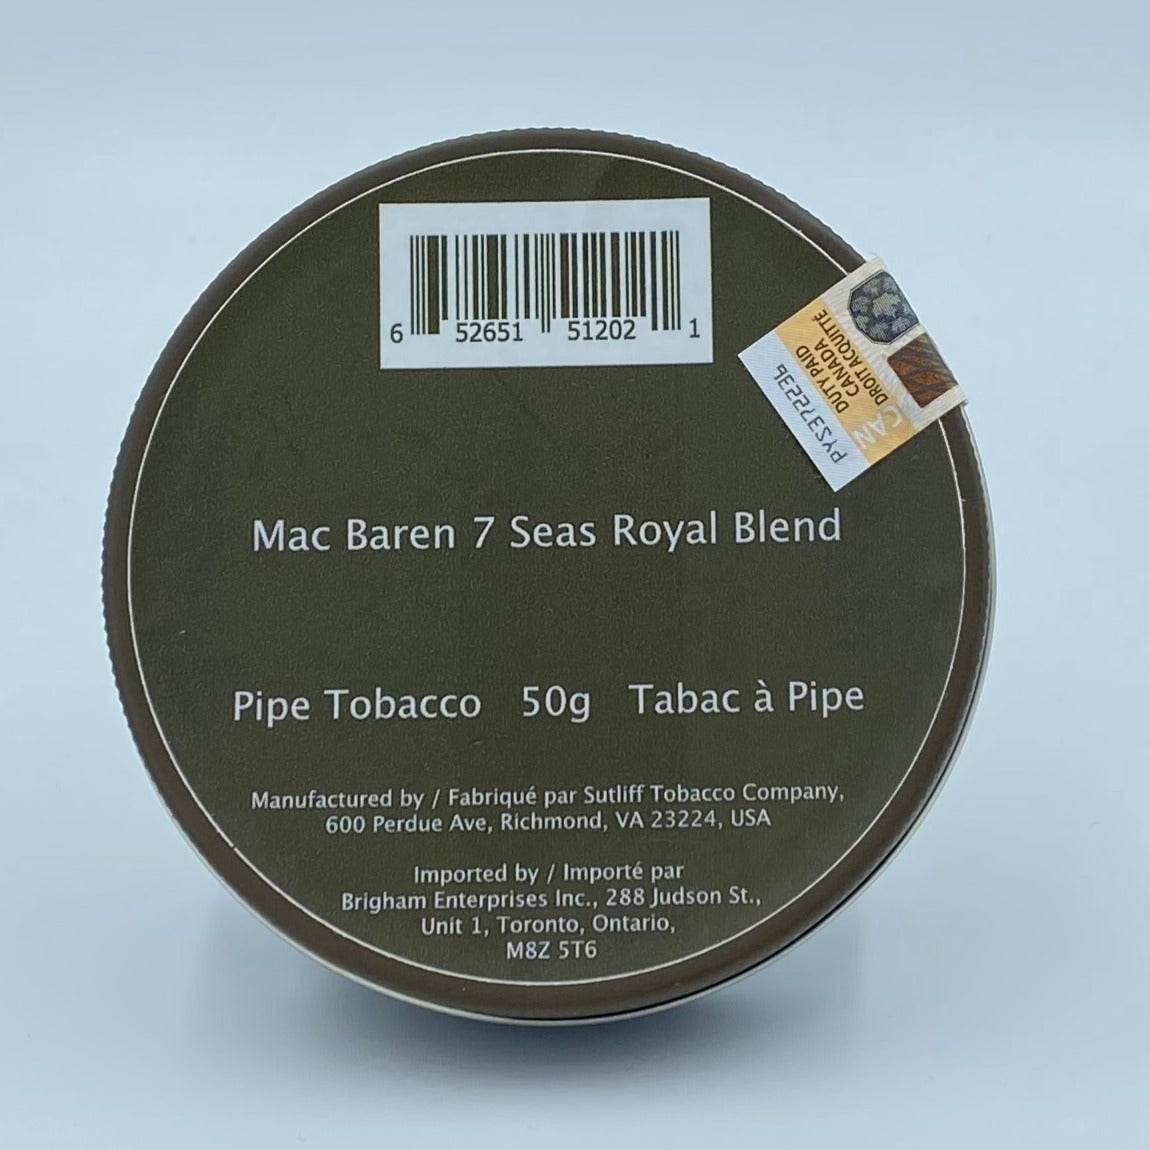 Mac Baren 7 Seas Royal Blend 50g Pipe Tobacco